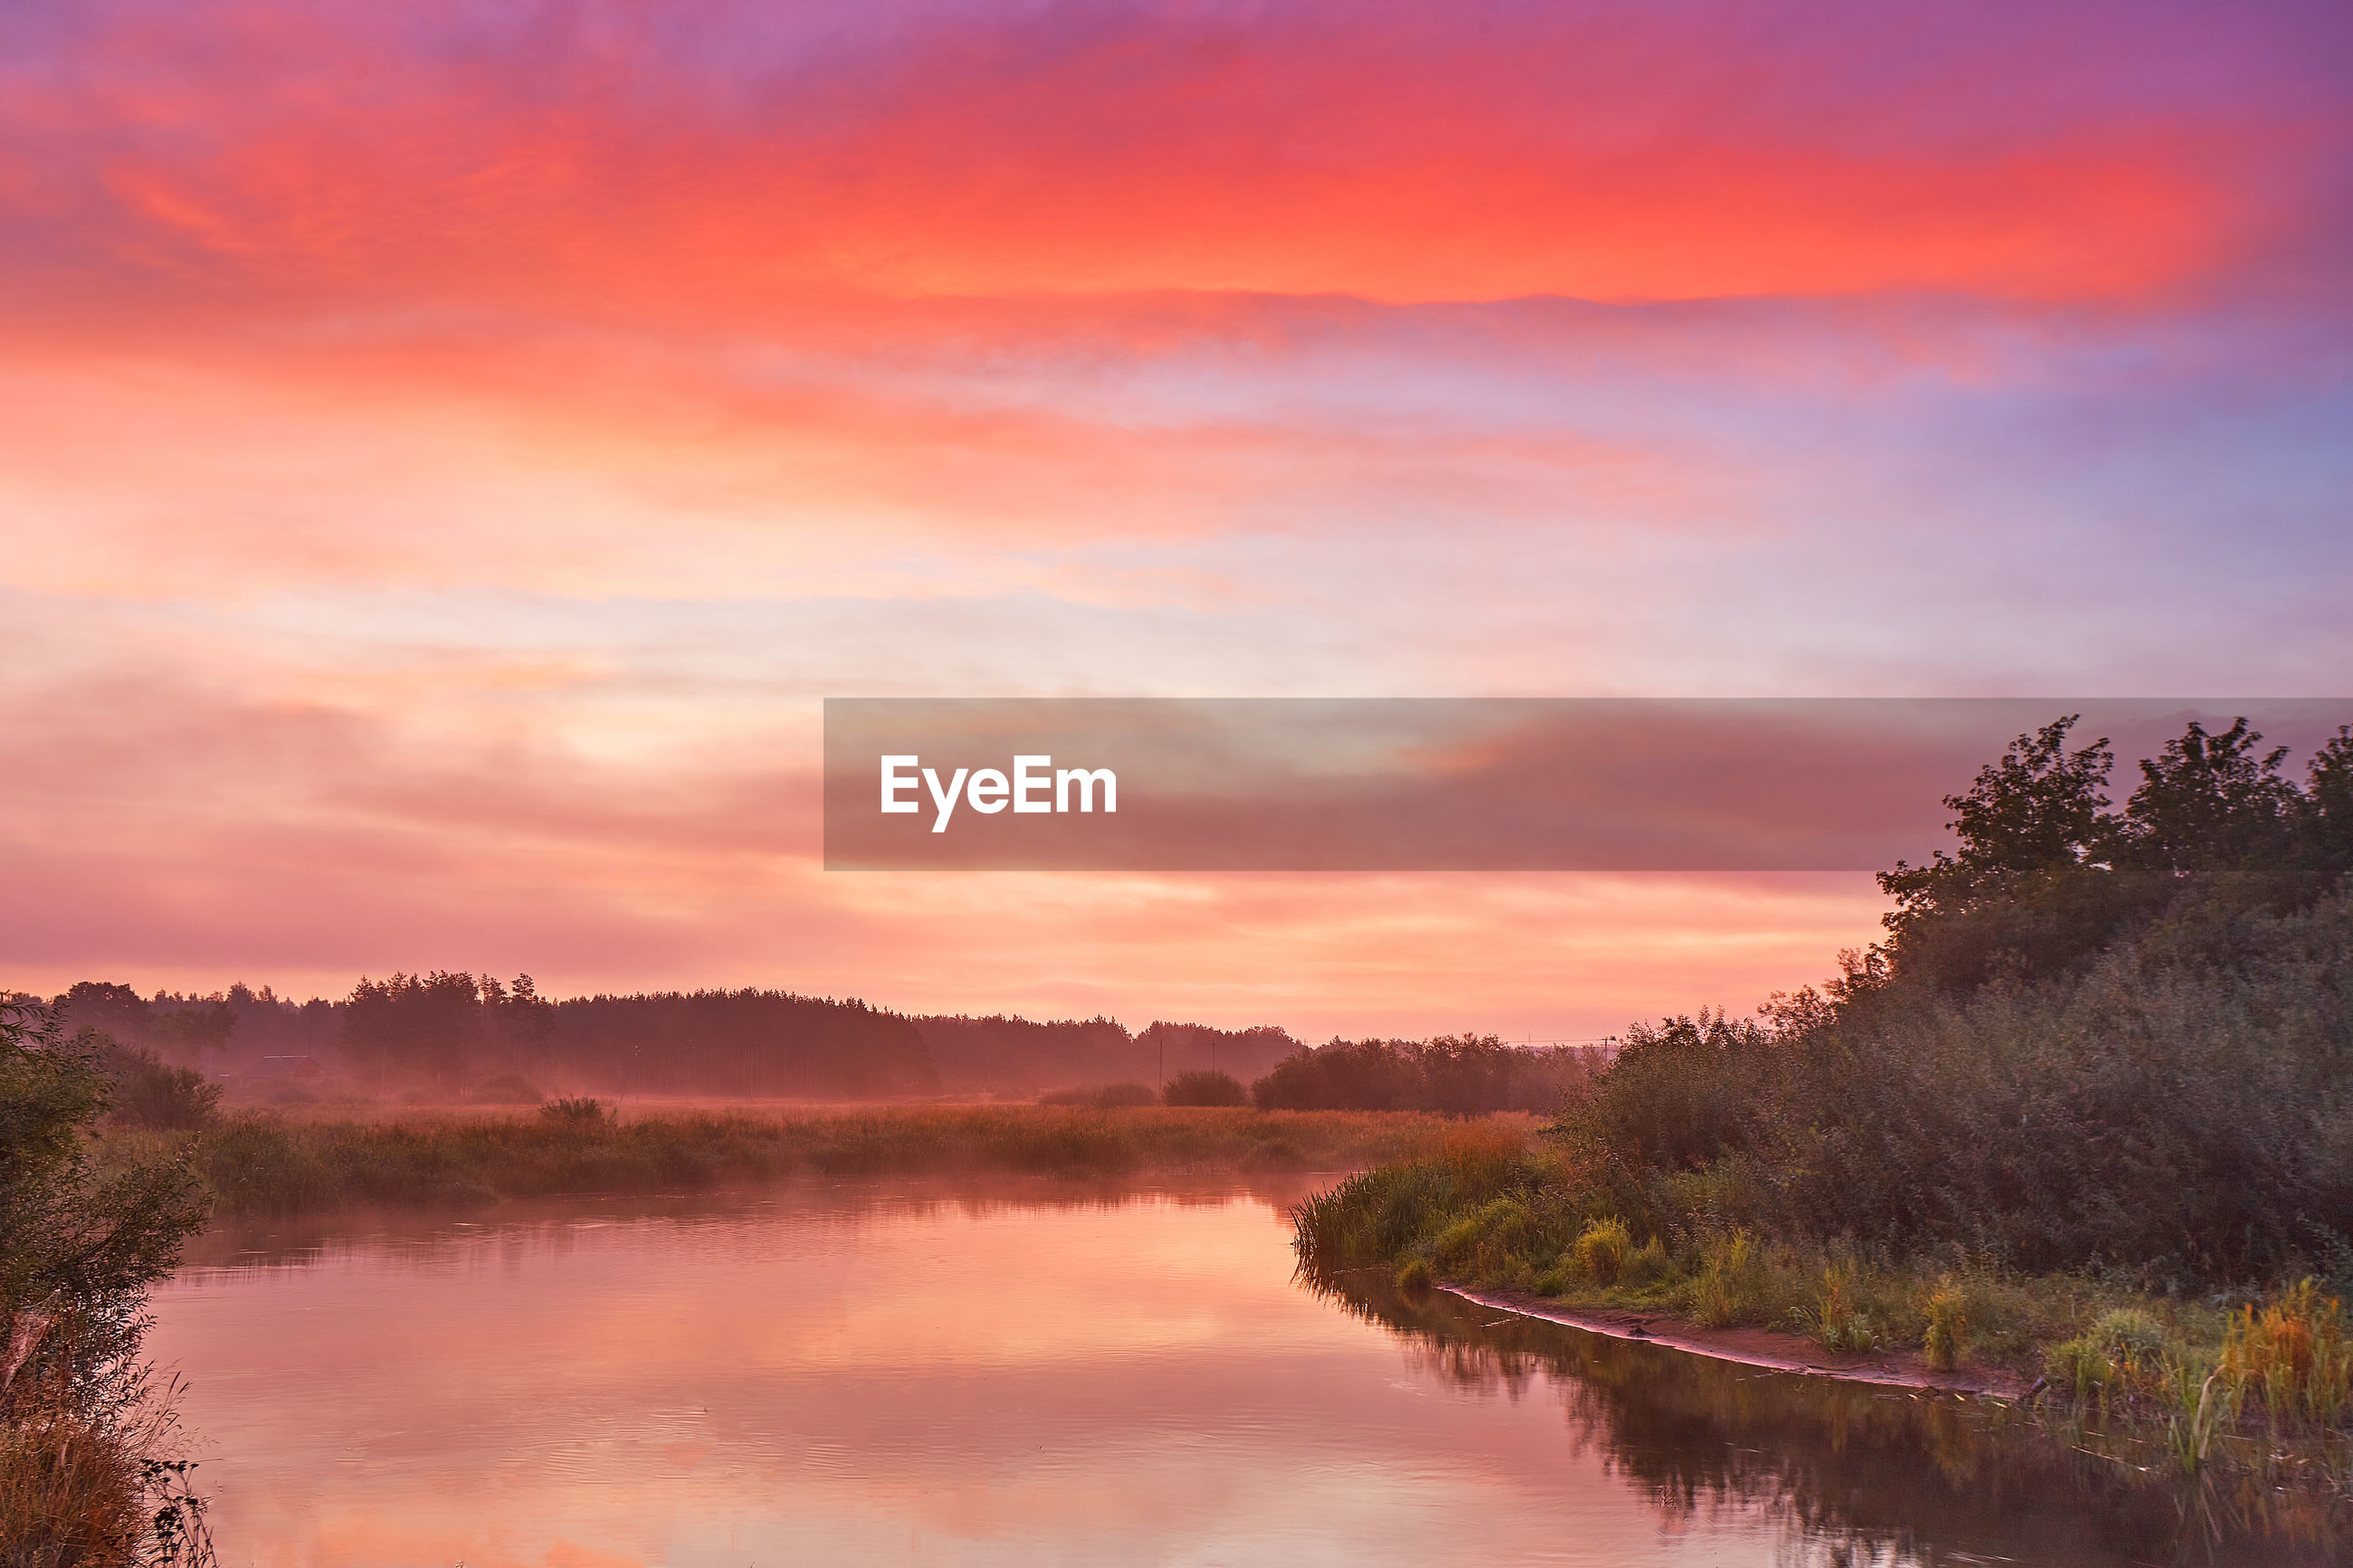 SCENIC VIEW OF LAKE BY TREES AGAINST ORANGE SKY